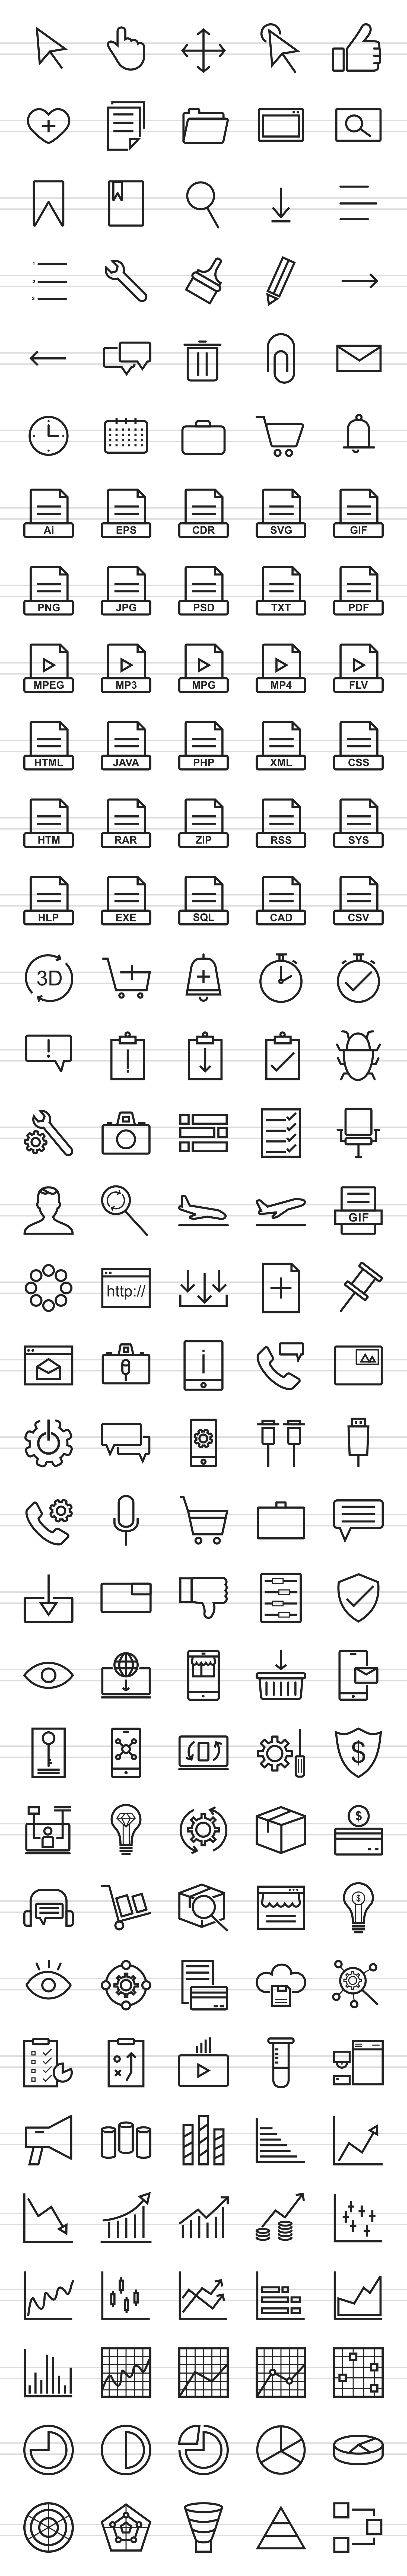 166 Interface Line Icons example image 2